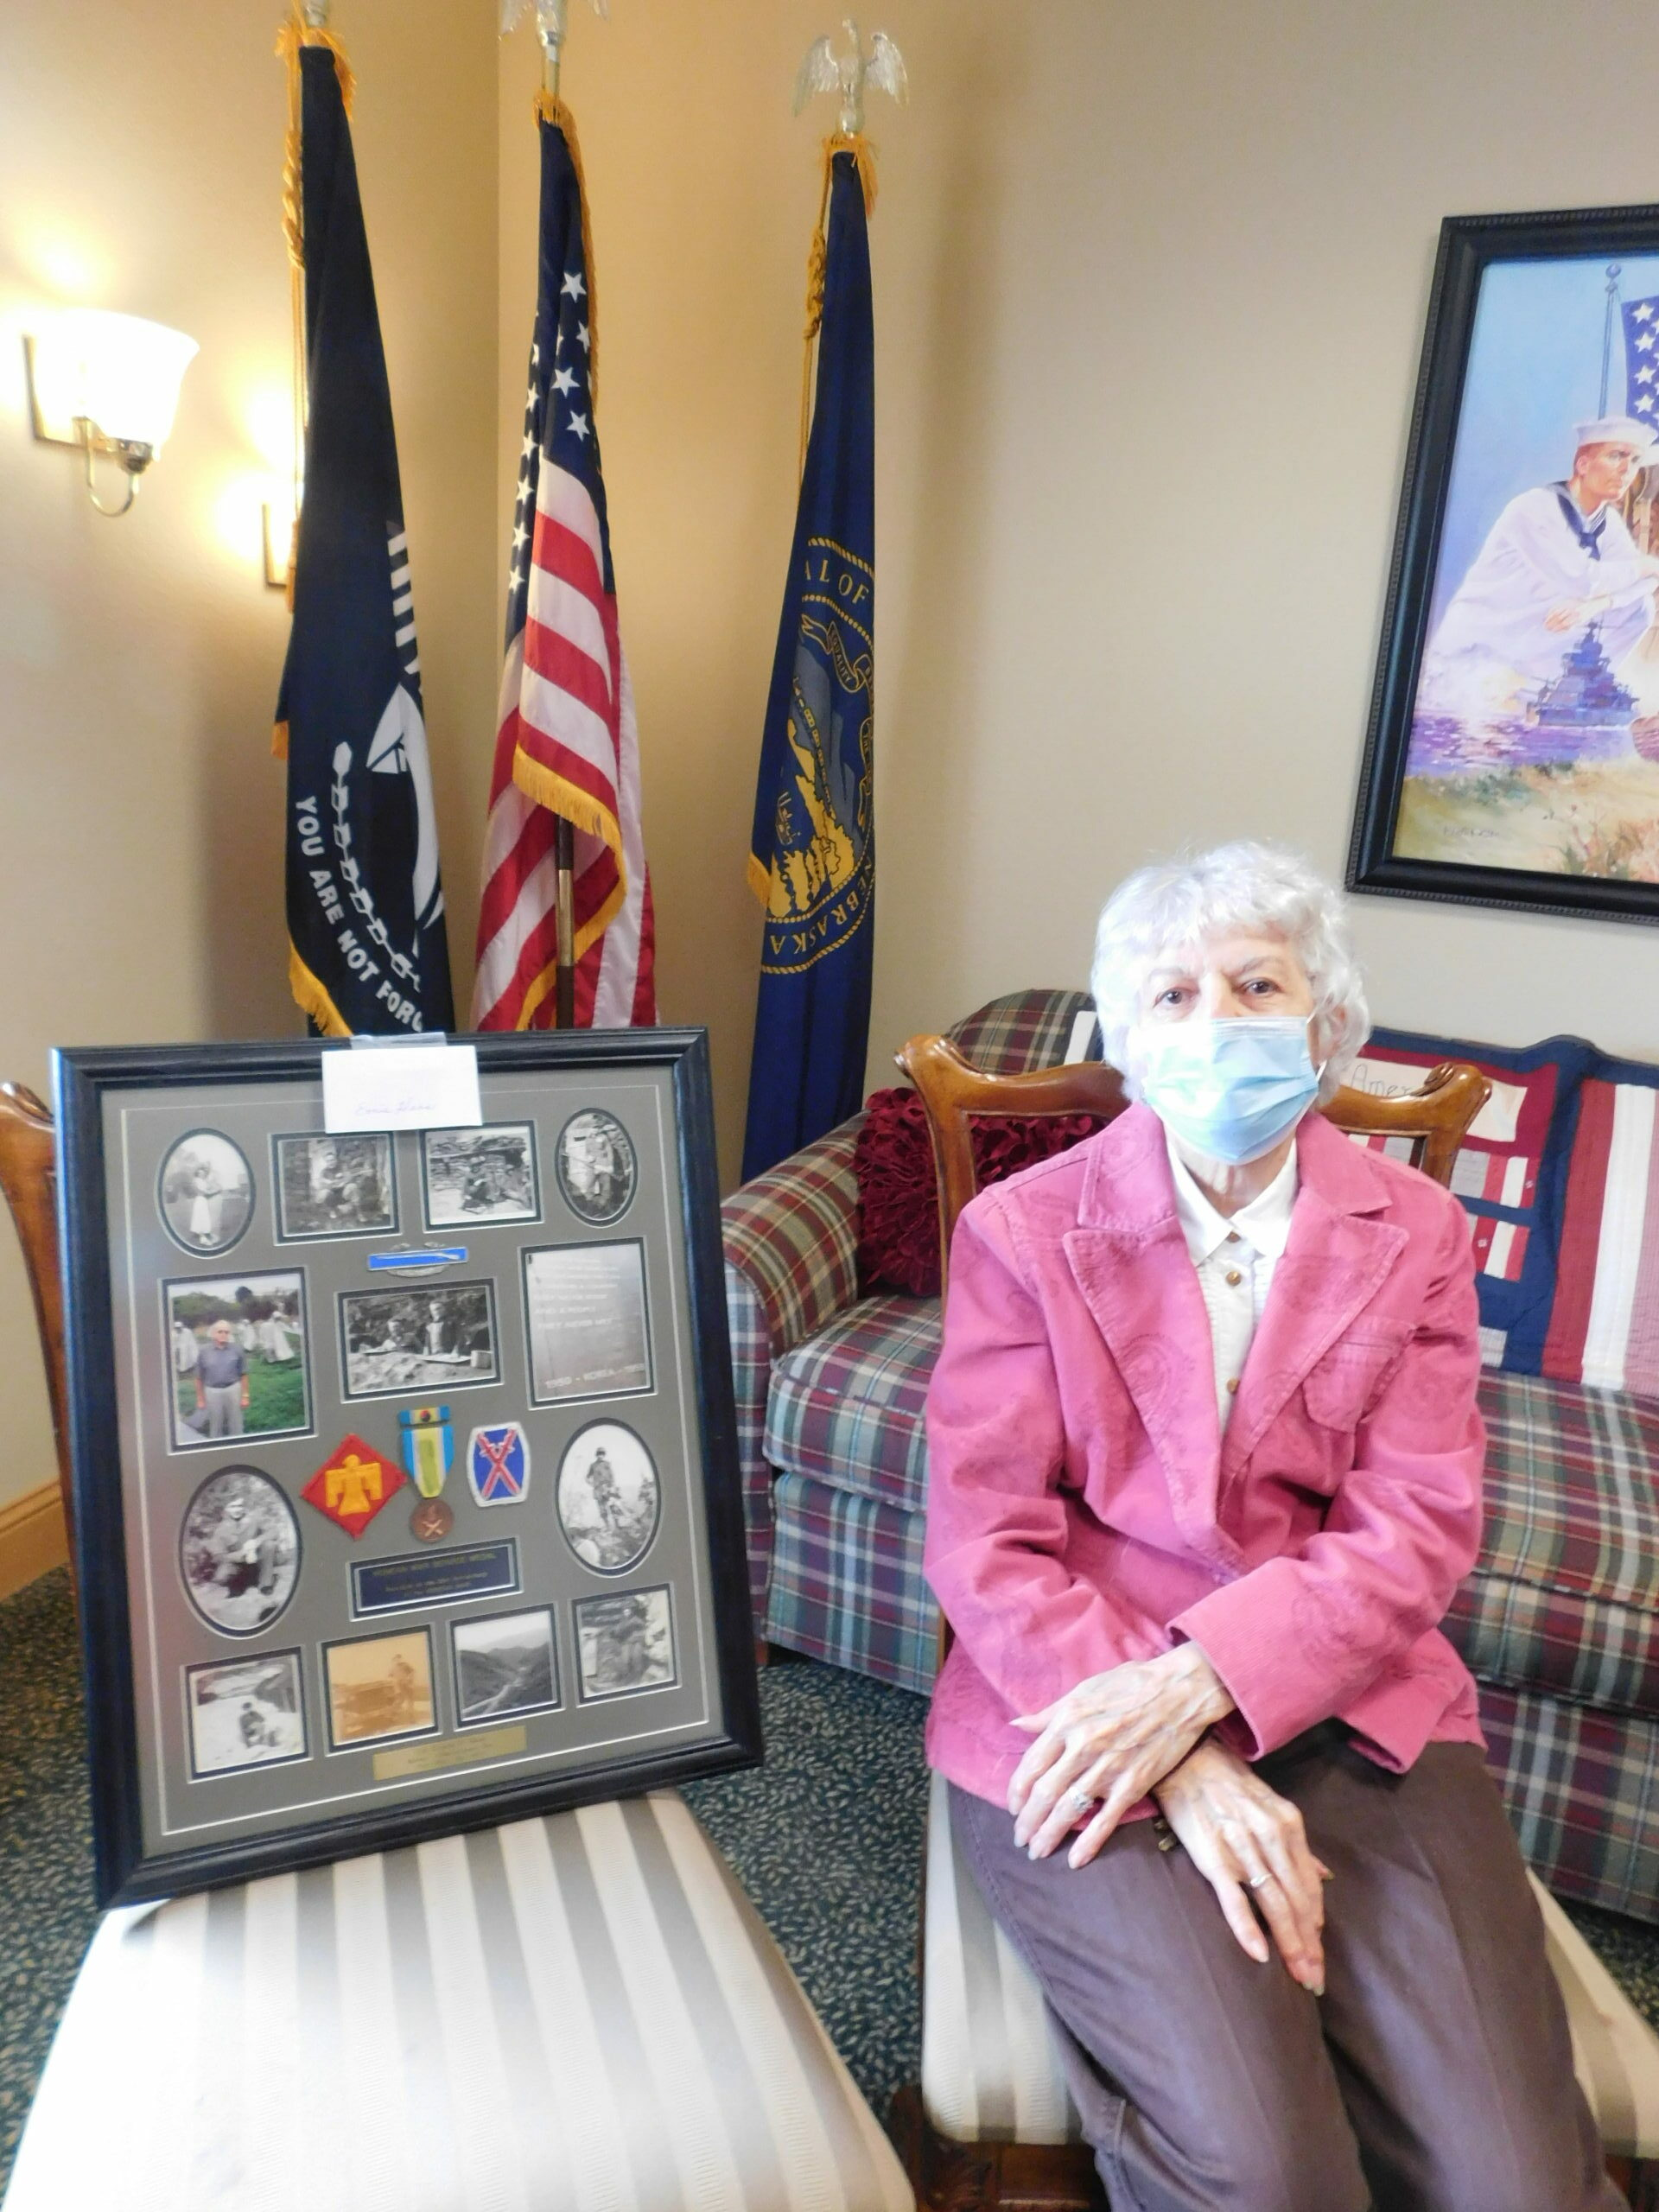 Joy shares a Veteran shadow box in honor of her husband, Ernie, with our Veterans.